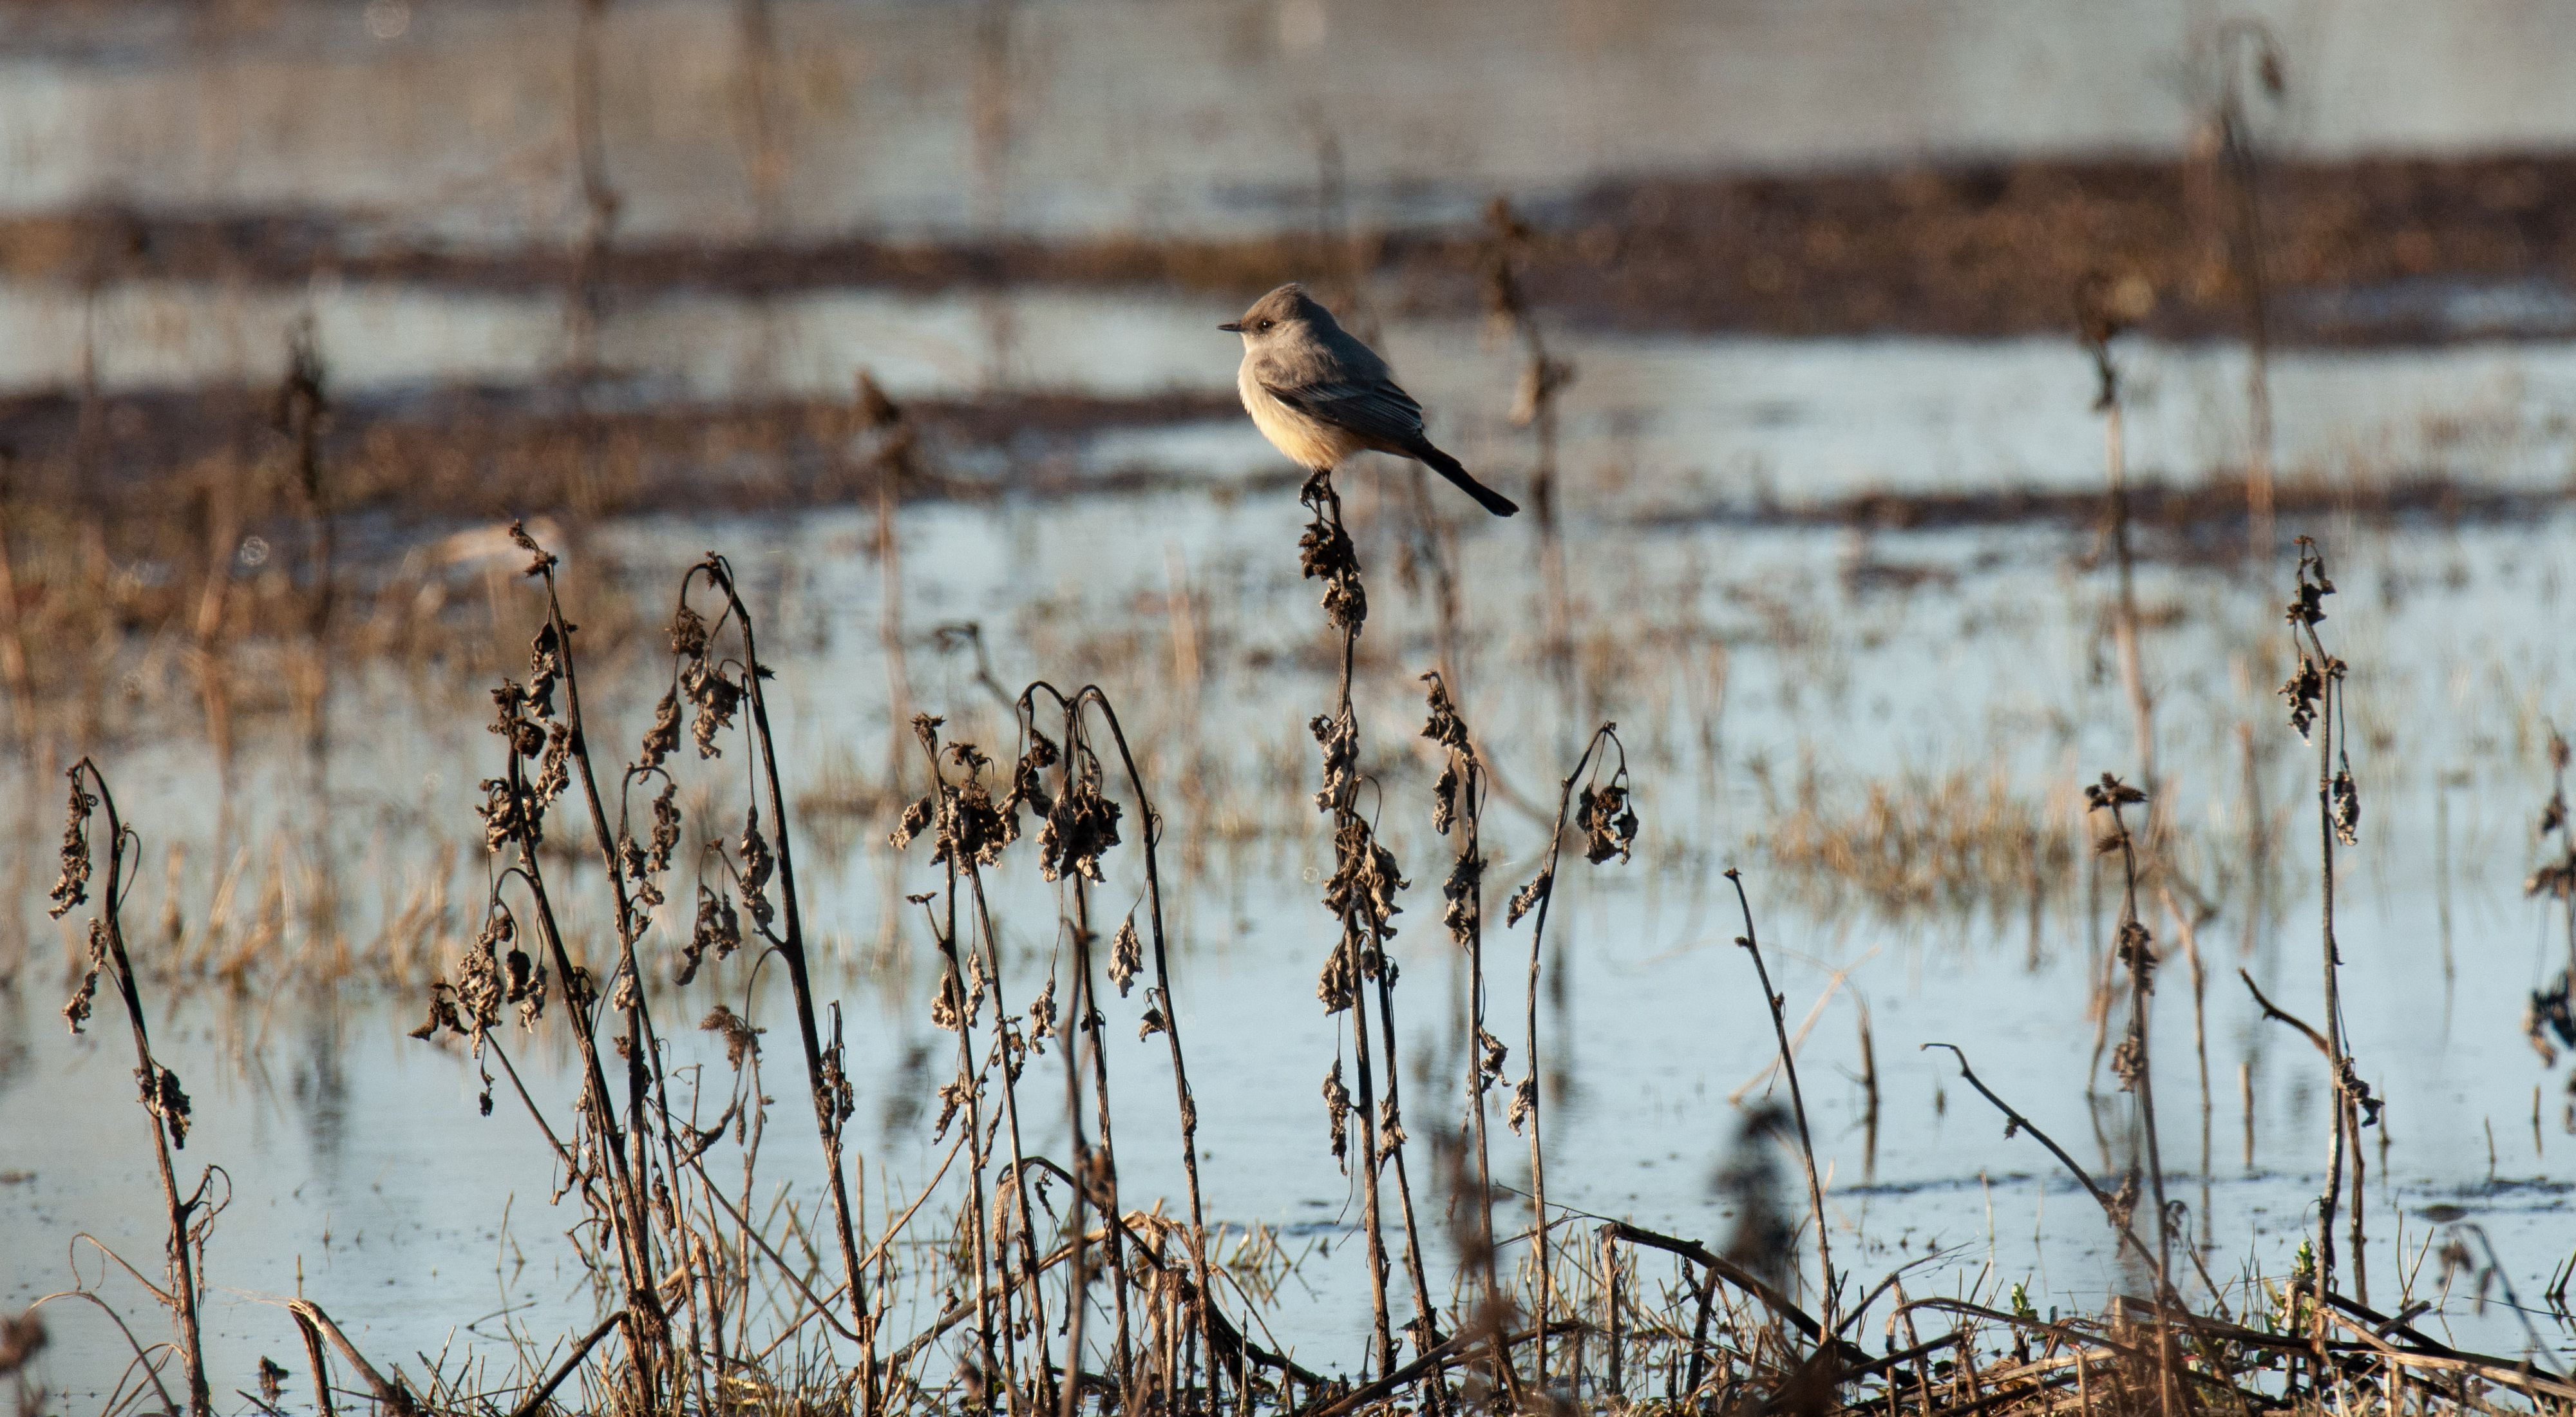 Bird on a blade of grass in the Cosumnes River Preserve